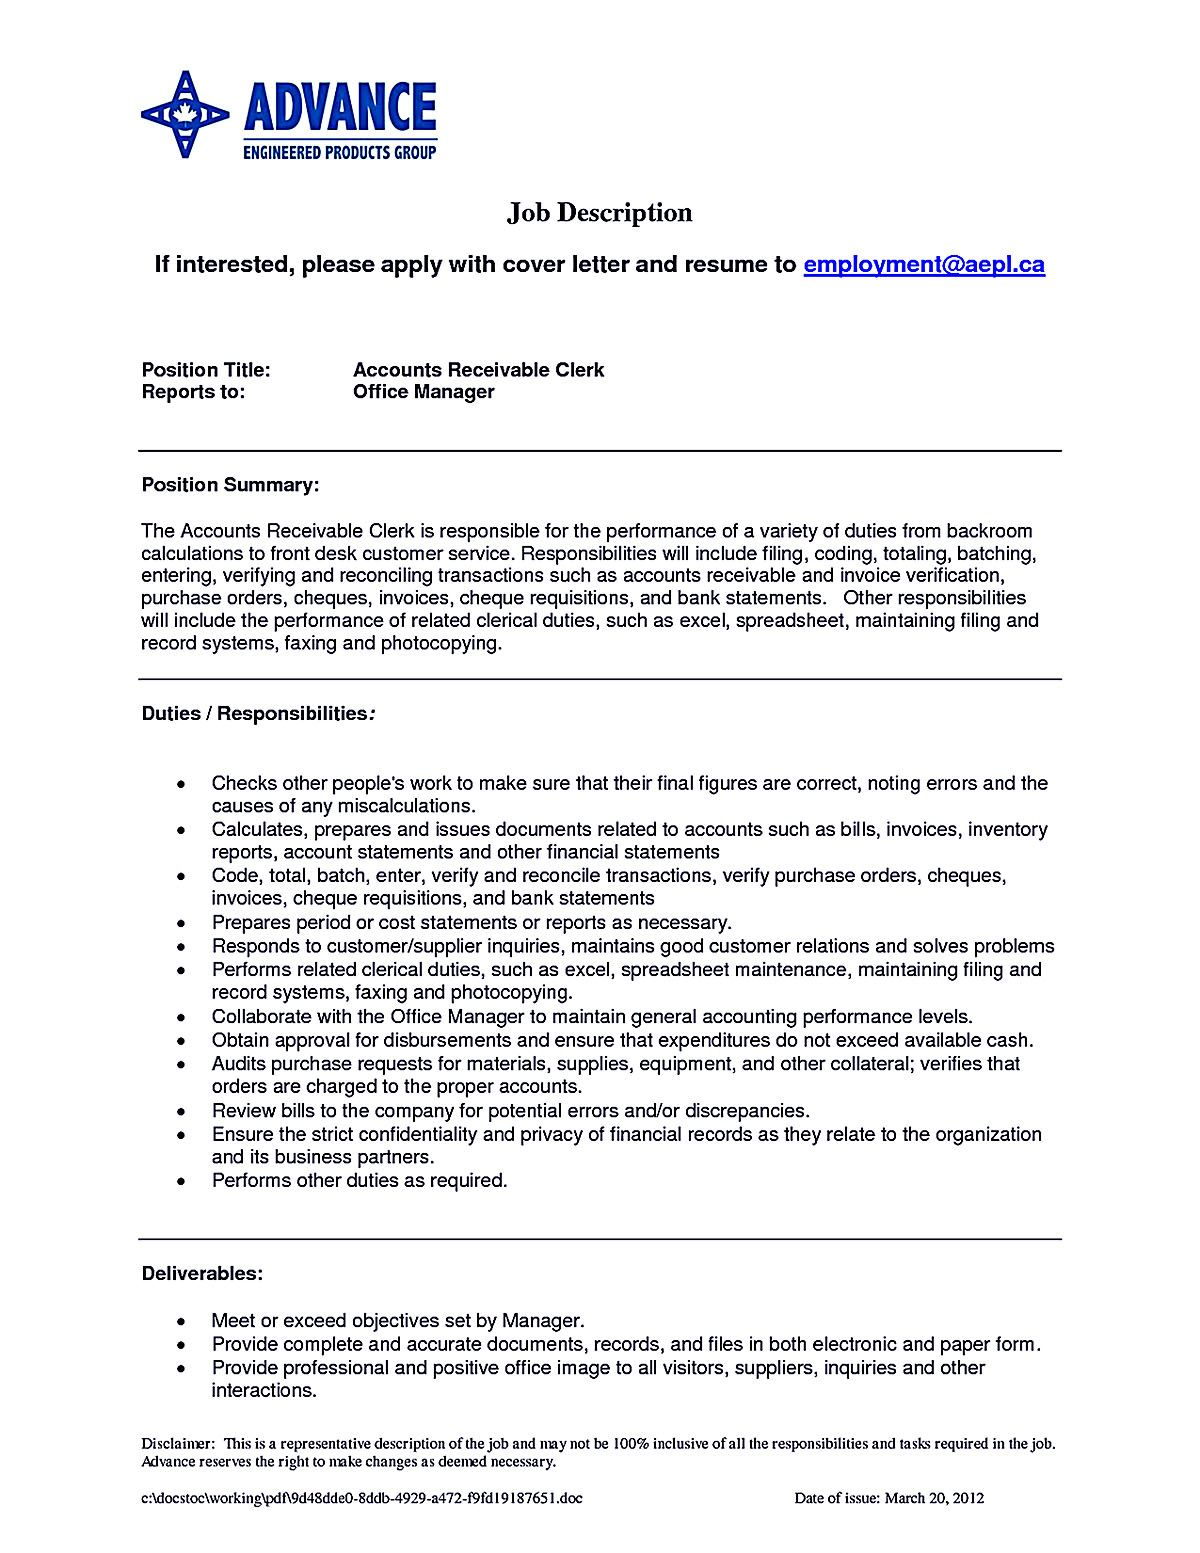 account receivable resume shows both technical and interpersonal skills you have  your